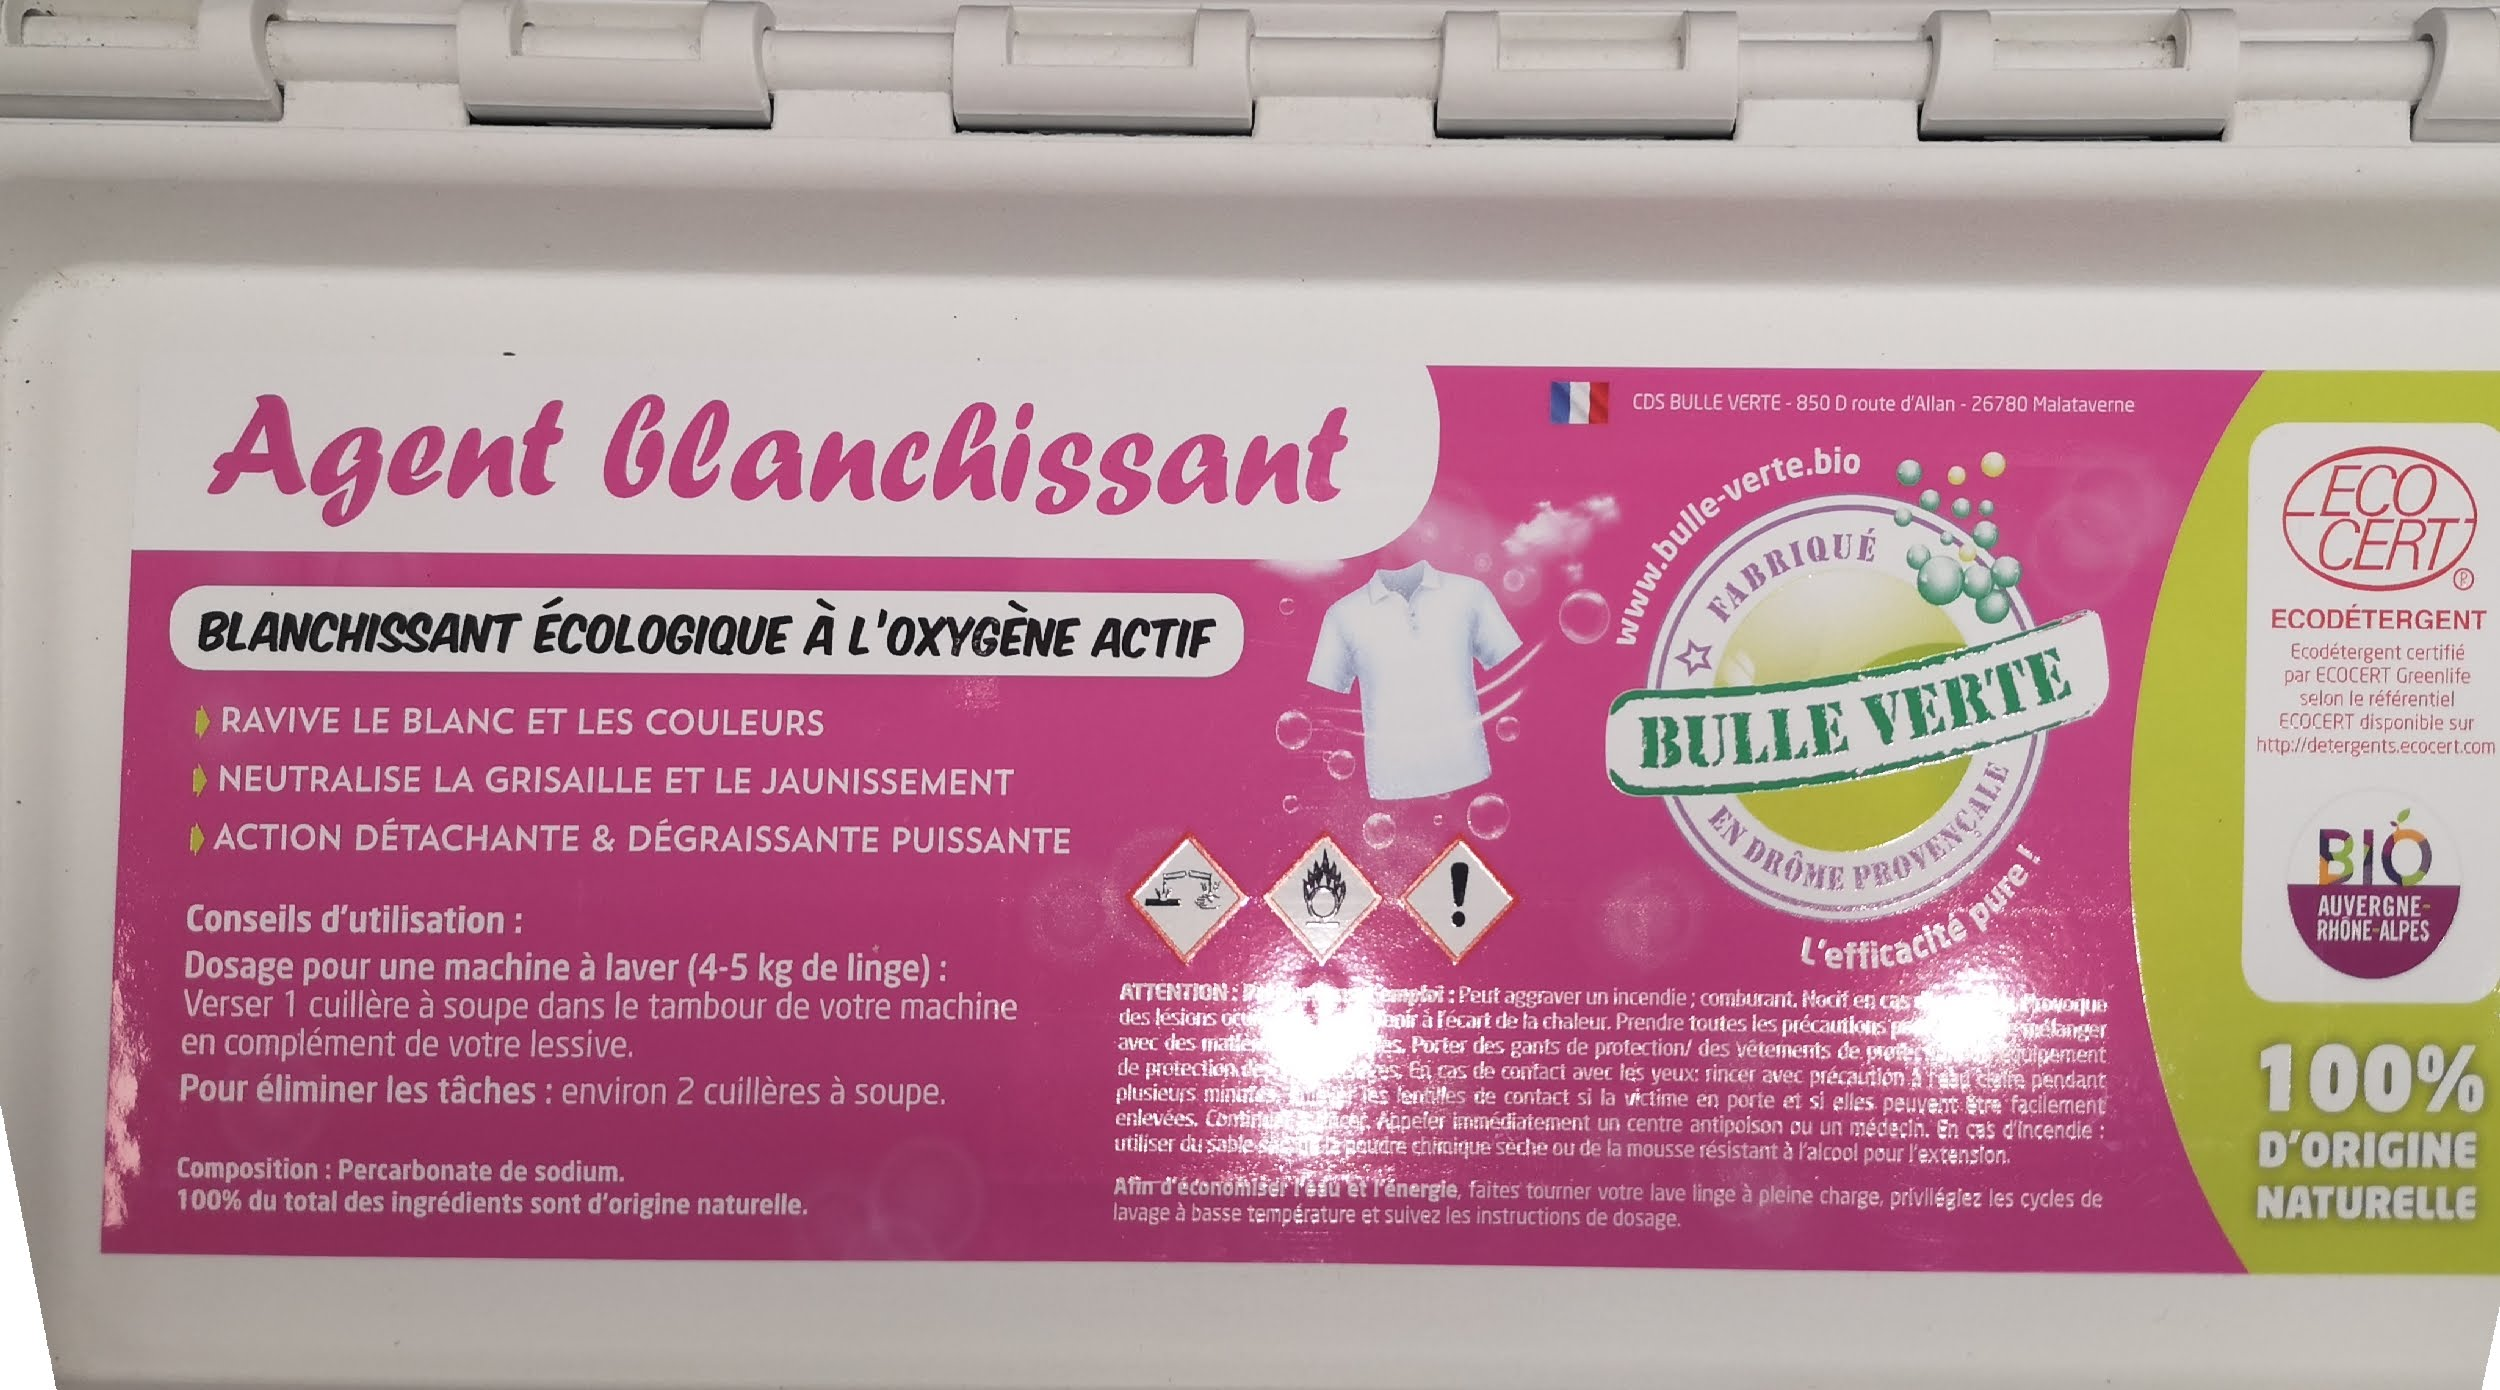 Agent blanchissant (Percarbonate)